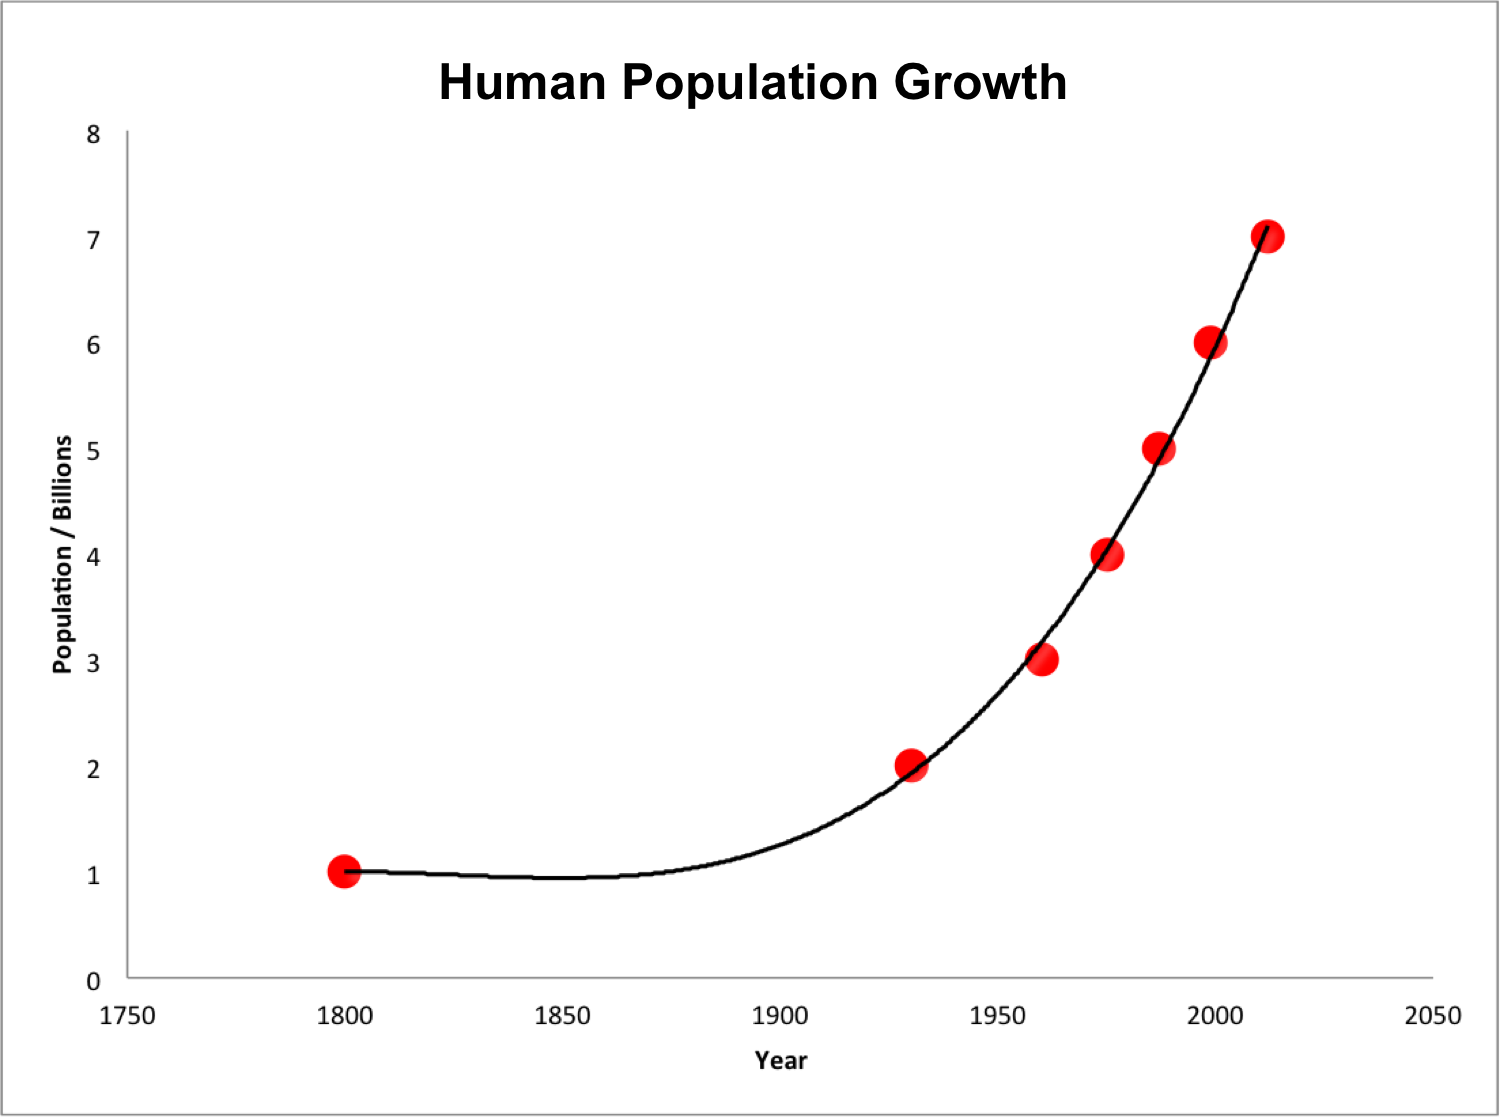 world population the human population has been growing rapidly since the mid 1800s